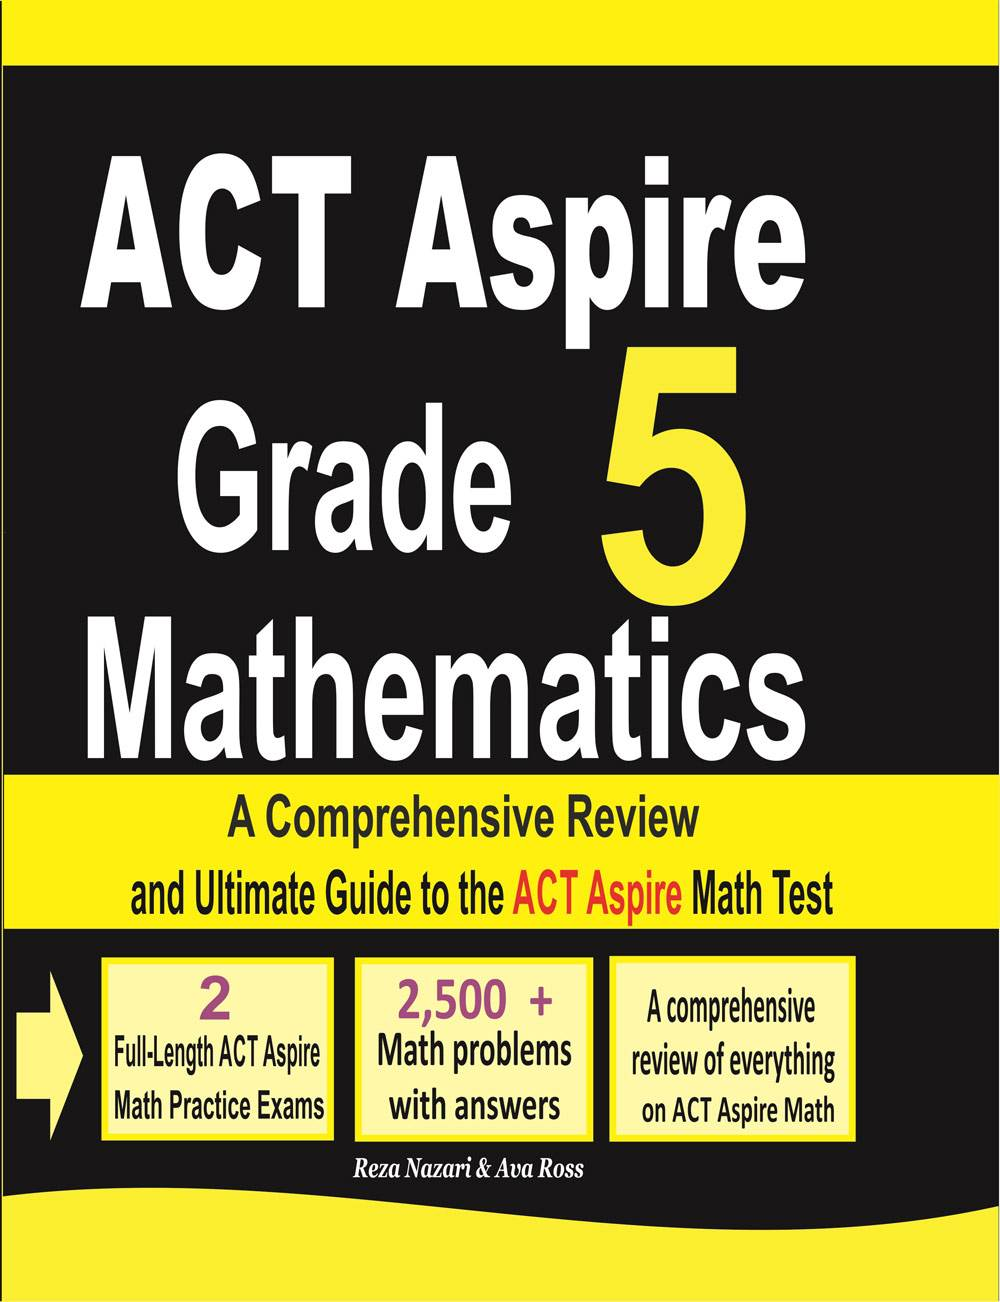 hight resolution of ACT Aspire Grade 5 Mathematics: A Comprehensive Review and Ultimate Guide  to the ACT Aspire Math Test - Effortless Math